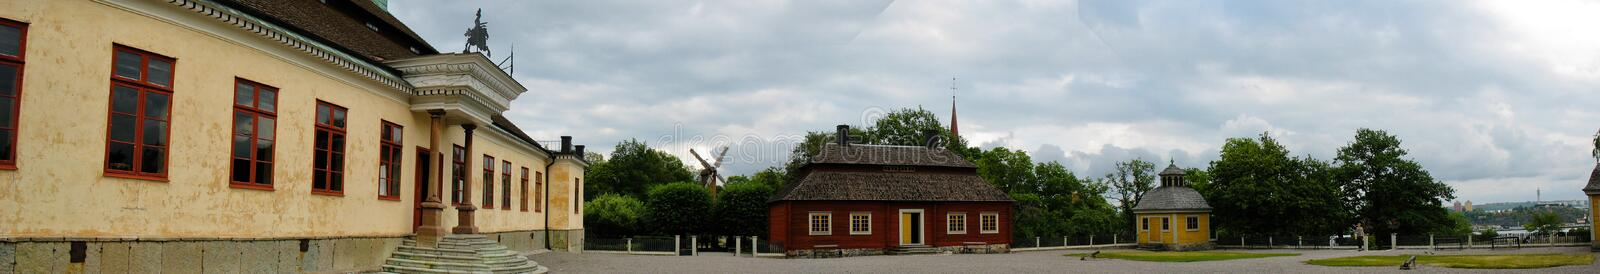 Download Swedish palace in Skansen stock image. Image of castle - 24711101